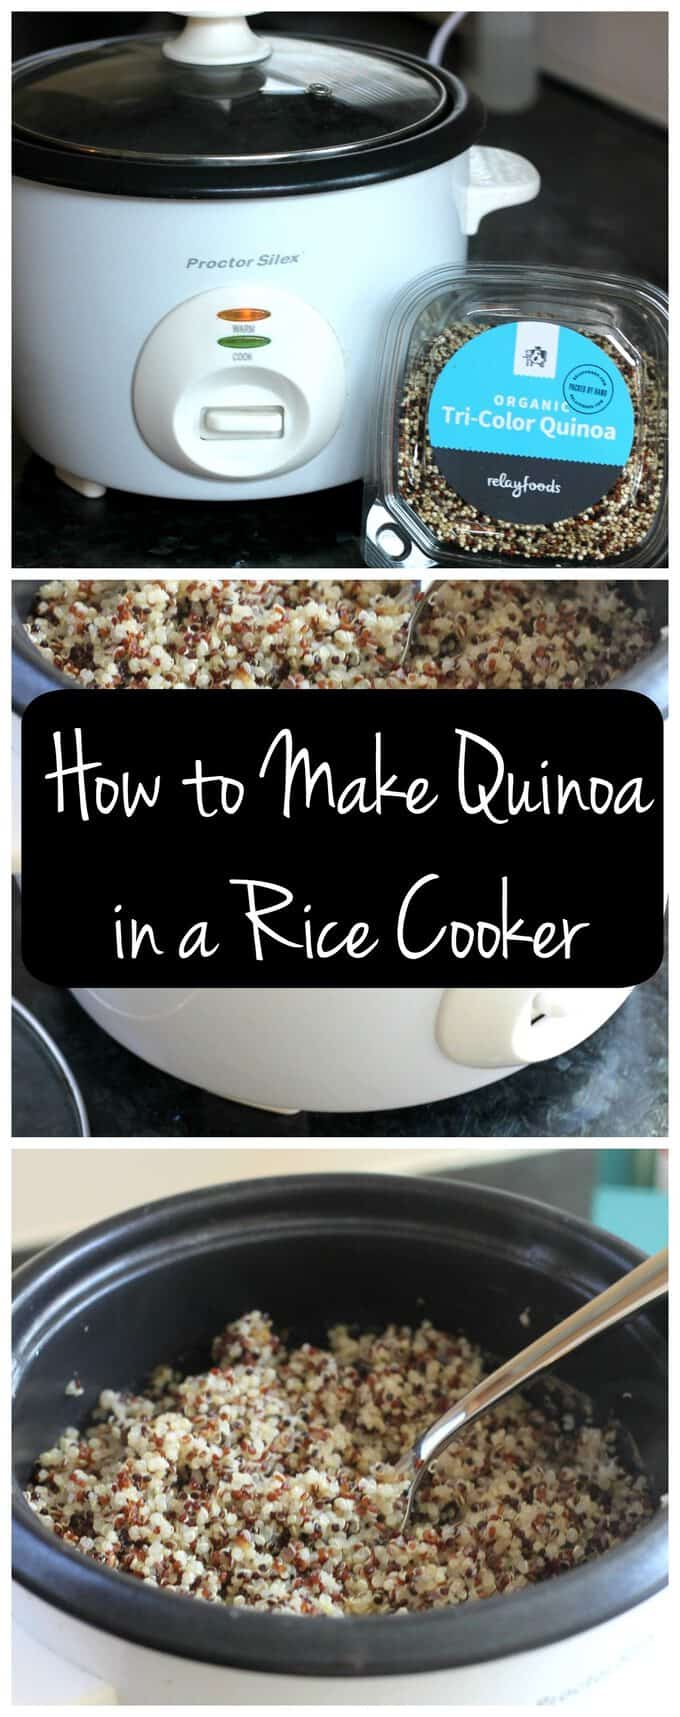 How to Make Quinoa in a Rice Cooker